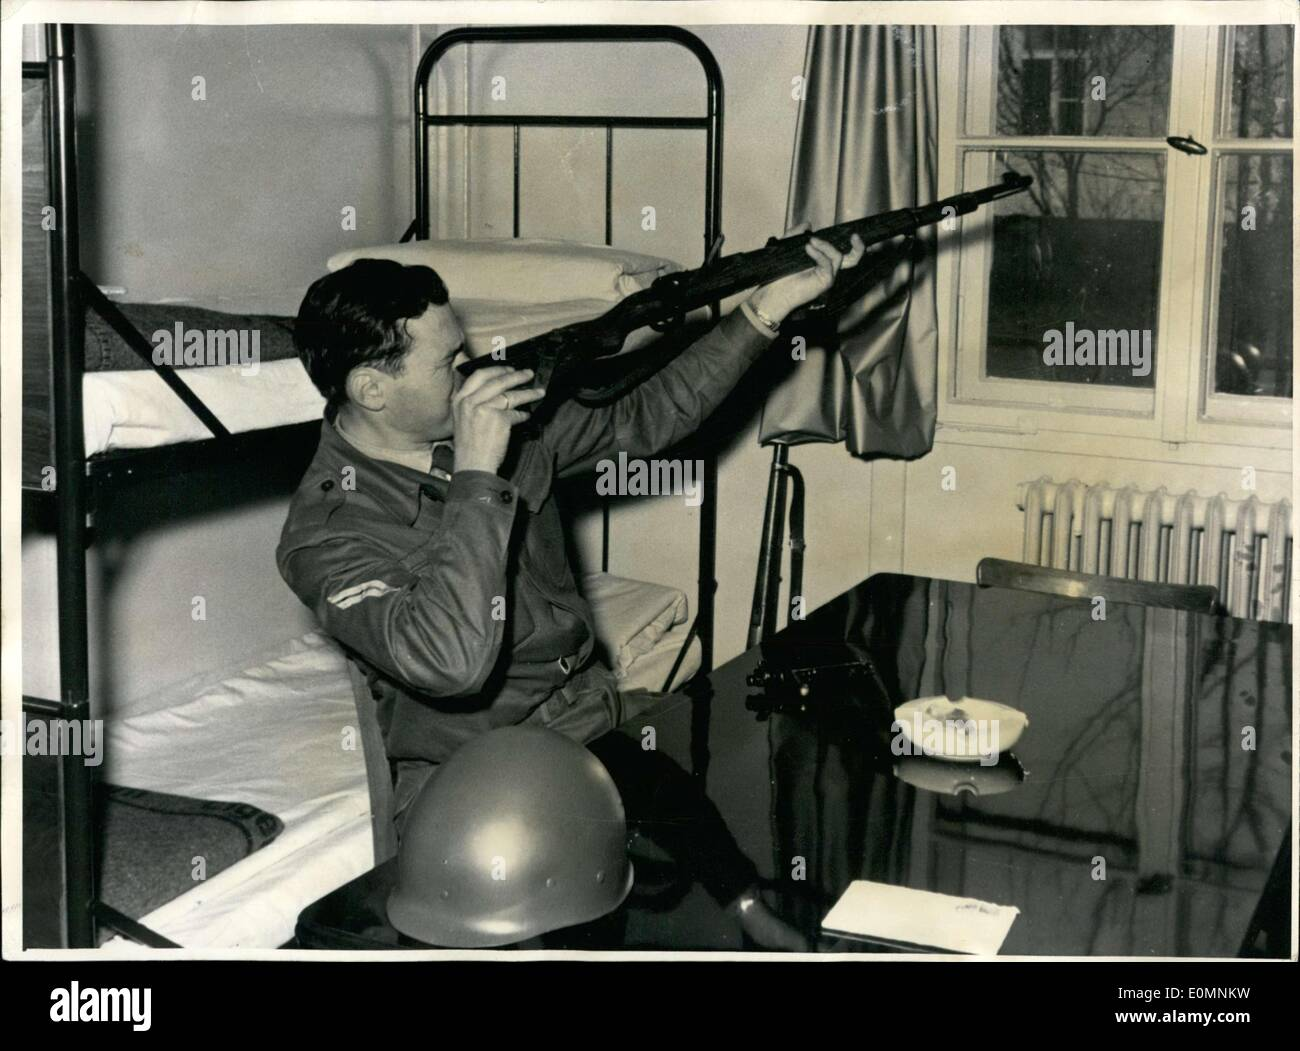 Jan. 02, 1956 - German Soldier with Carbine 98 K. - Stock Image